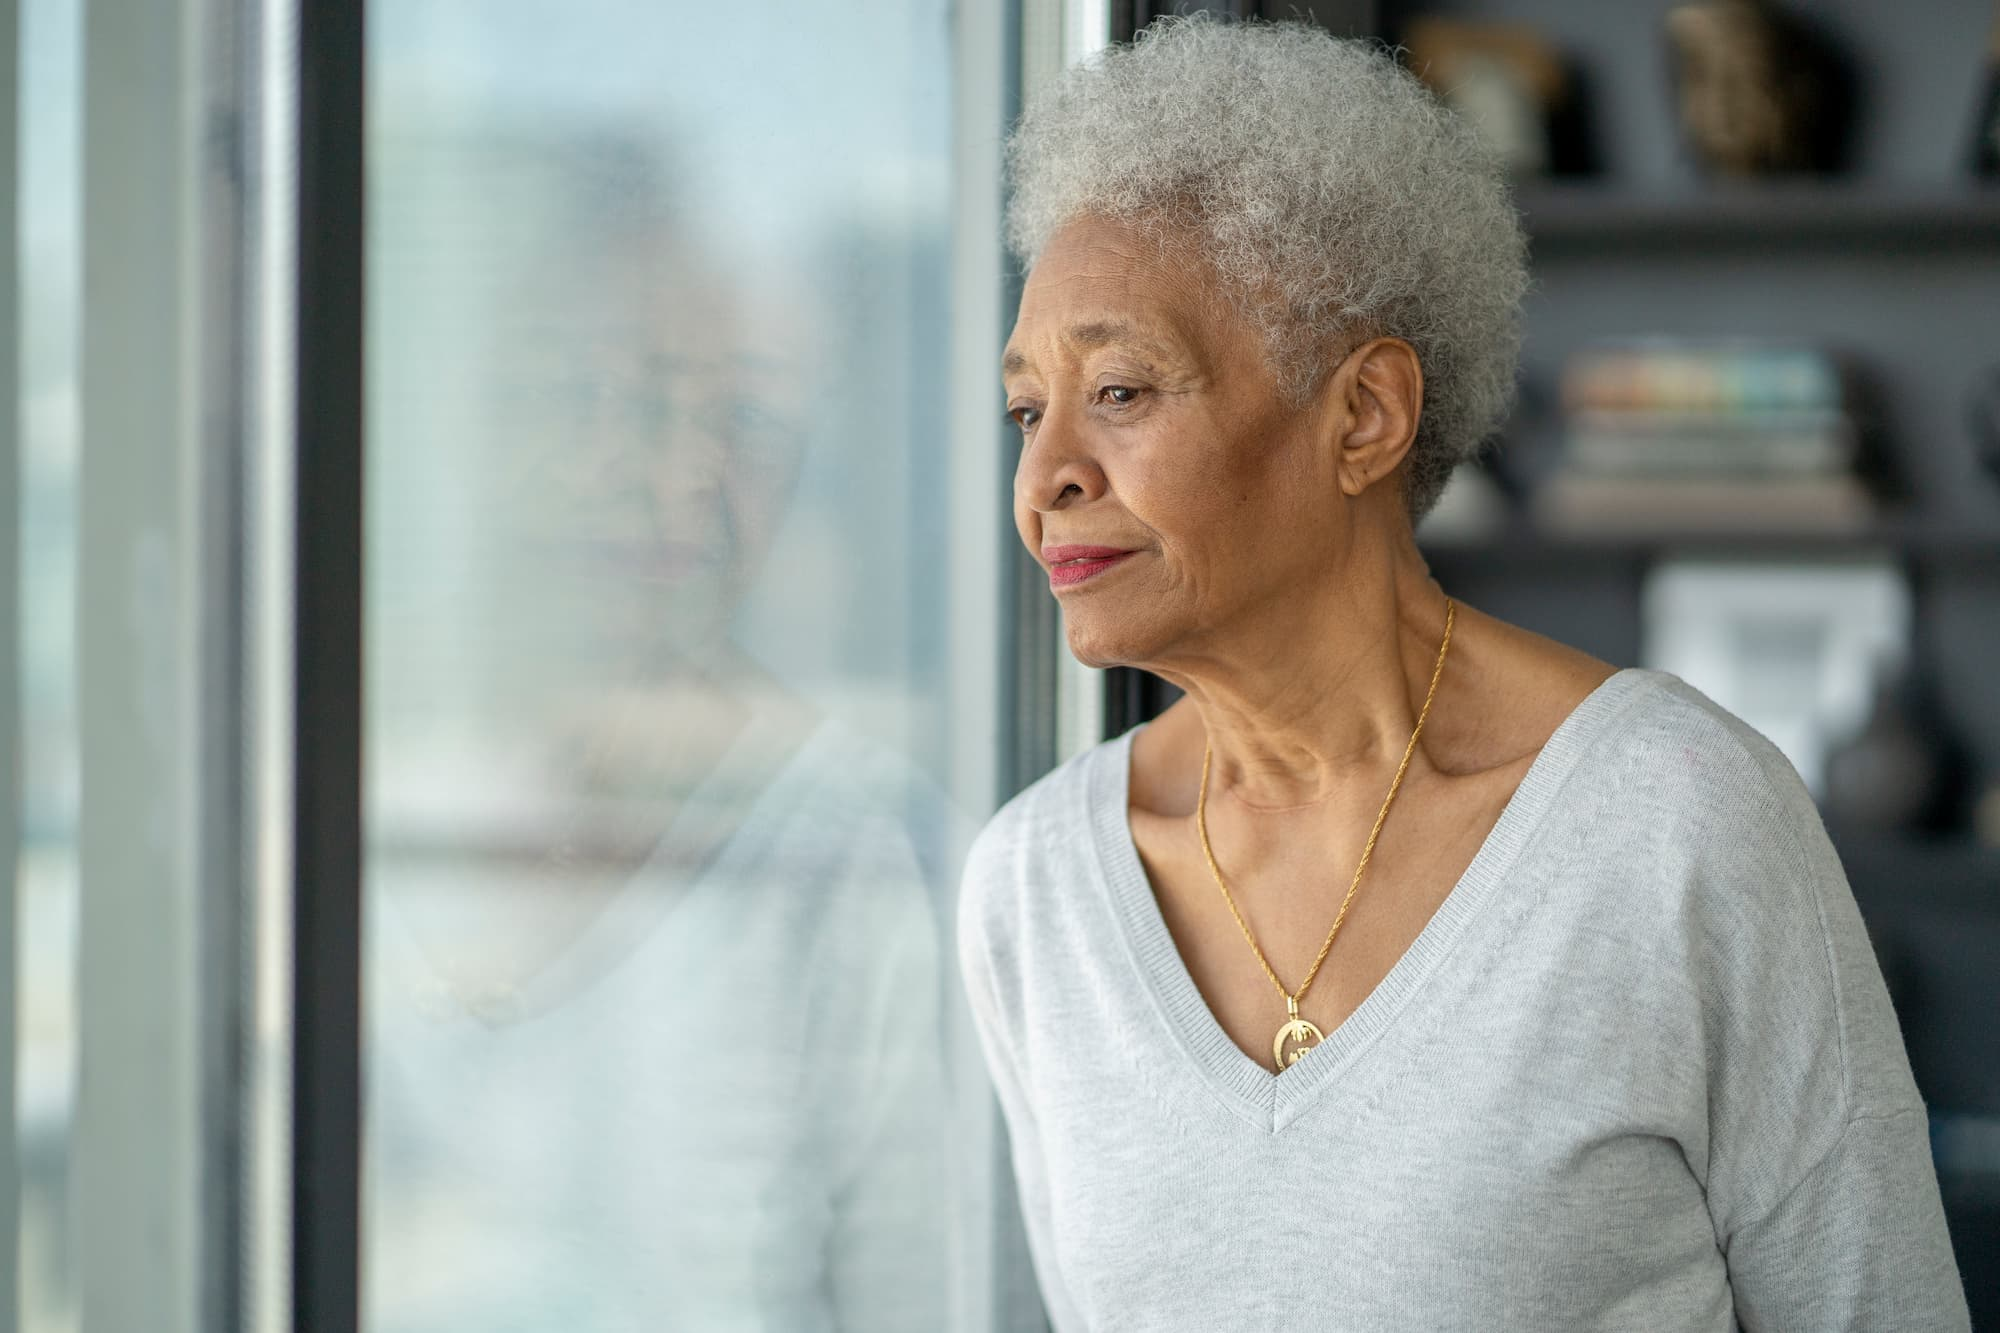 Older woman looking out a window, in thought.